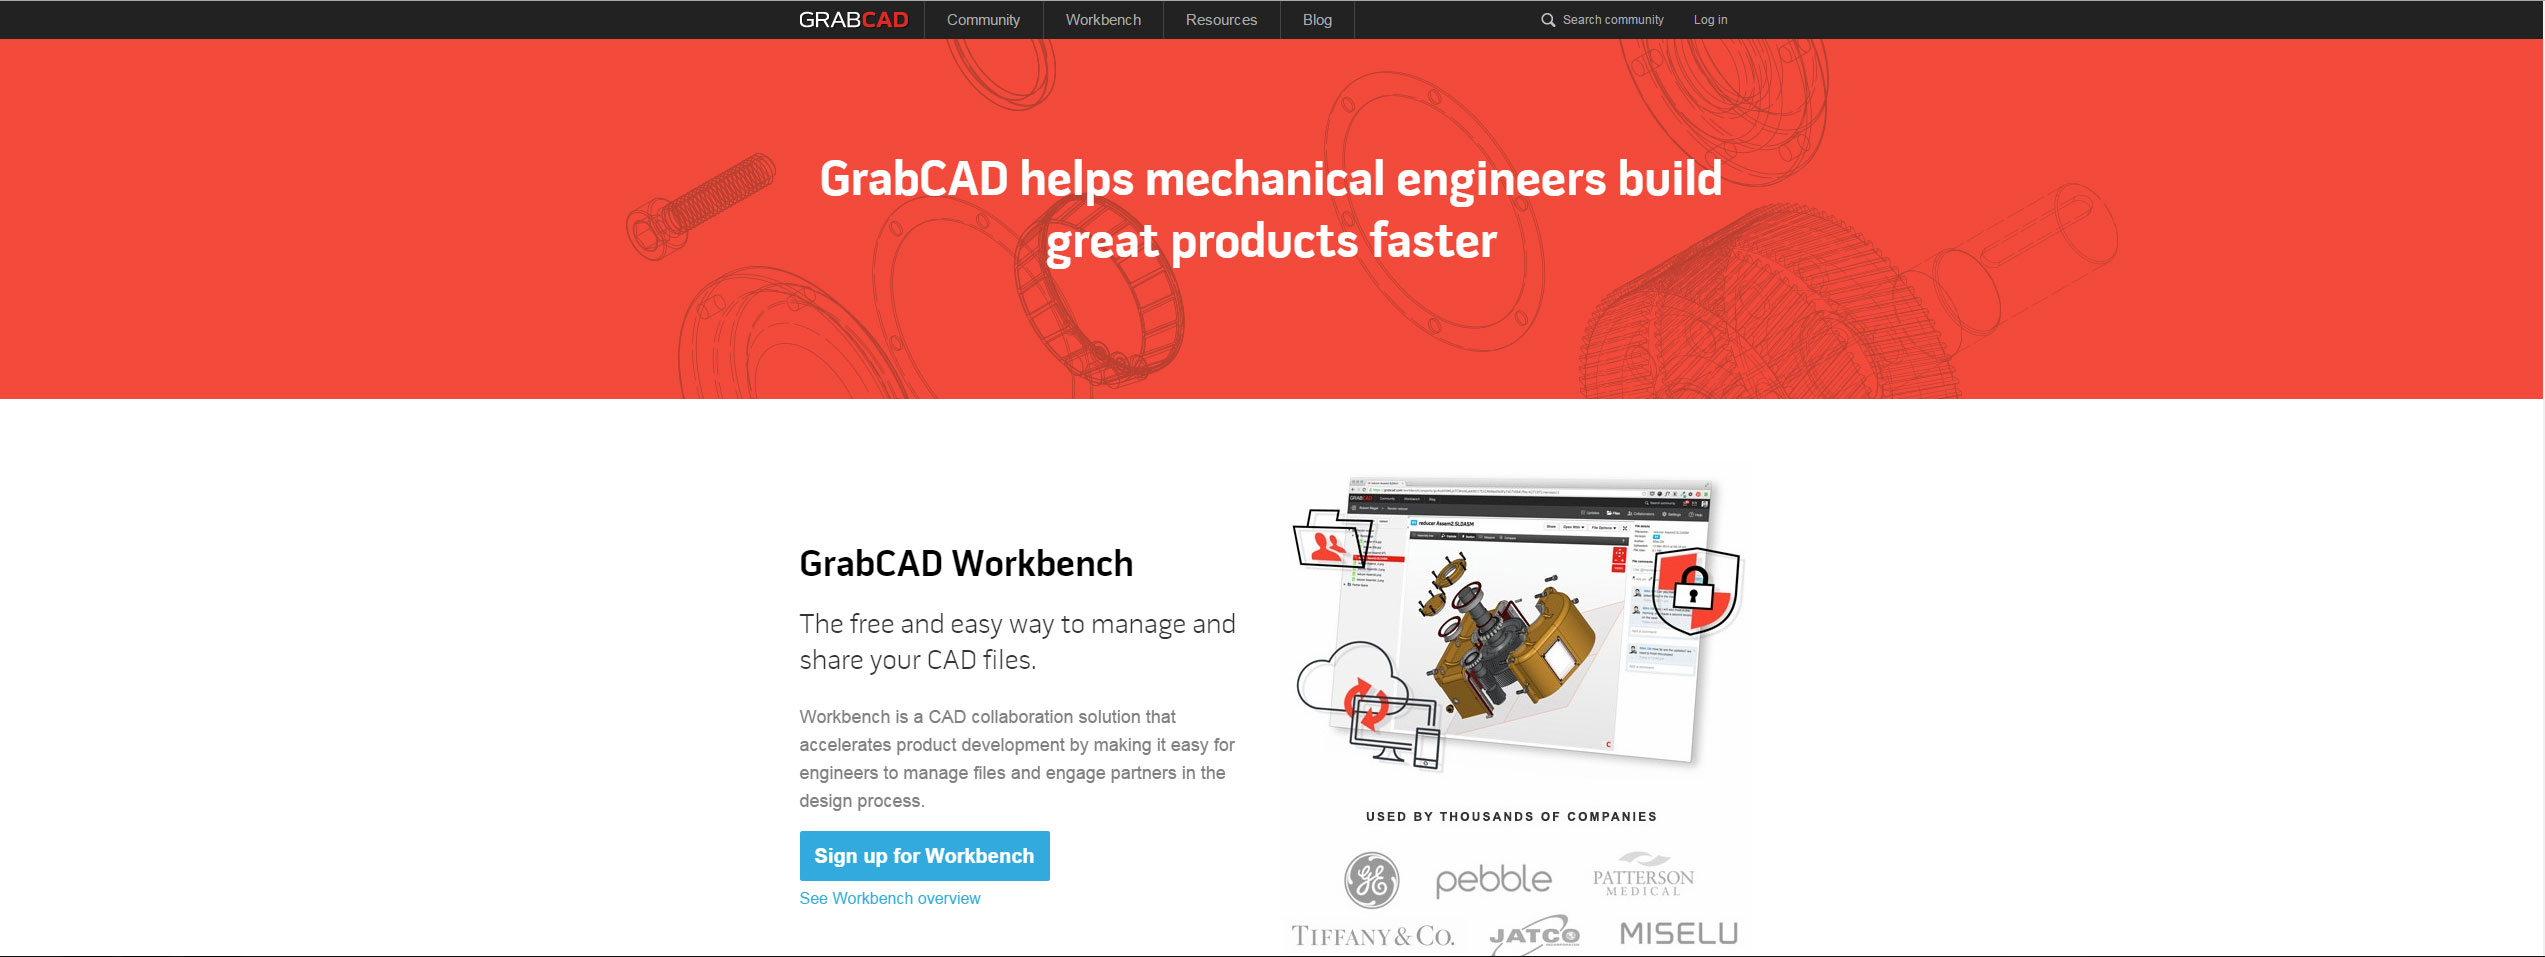 grabcad - 3D Printers Greece